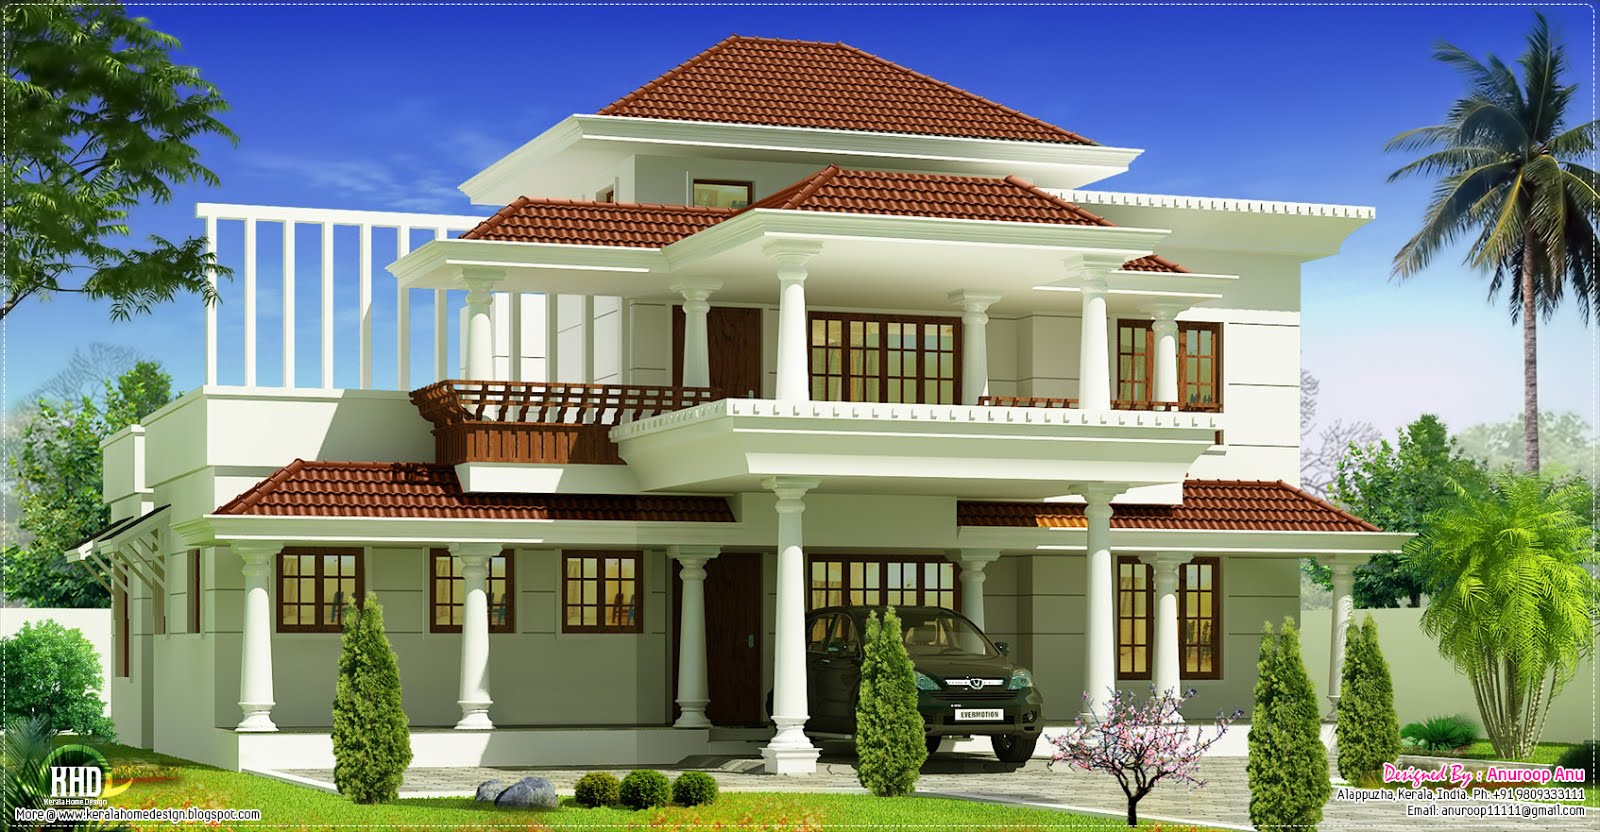 Kerala house models houses plans designs for Model house plan